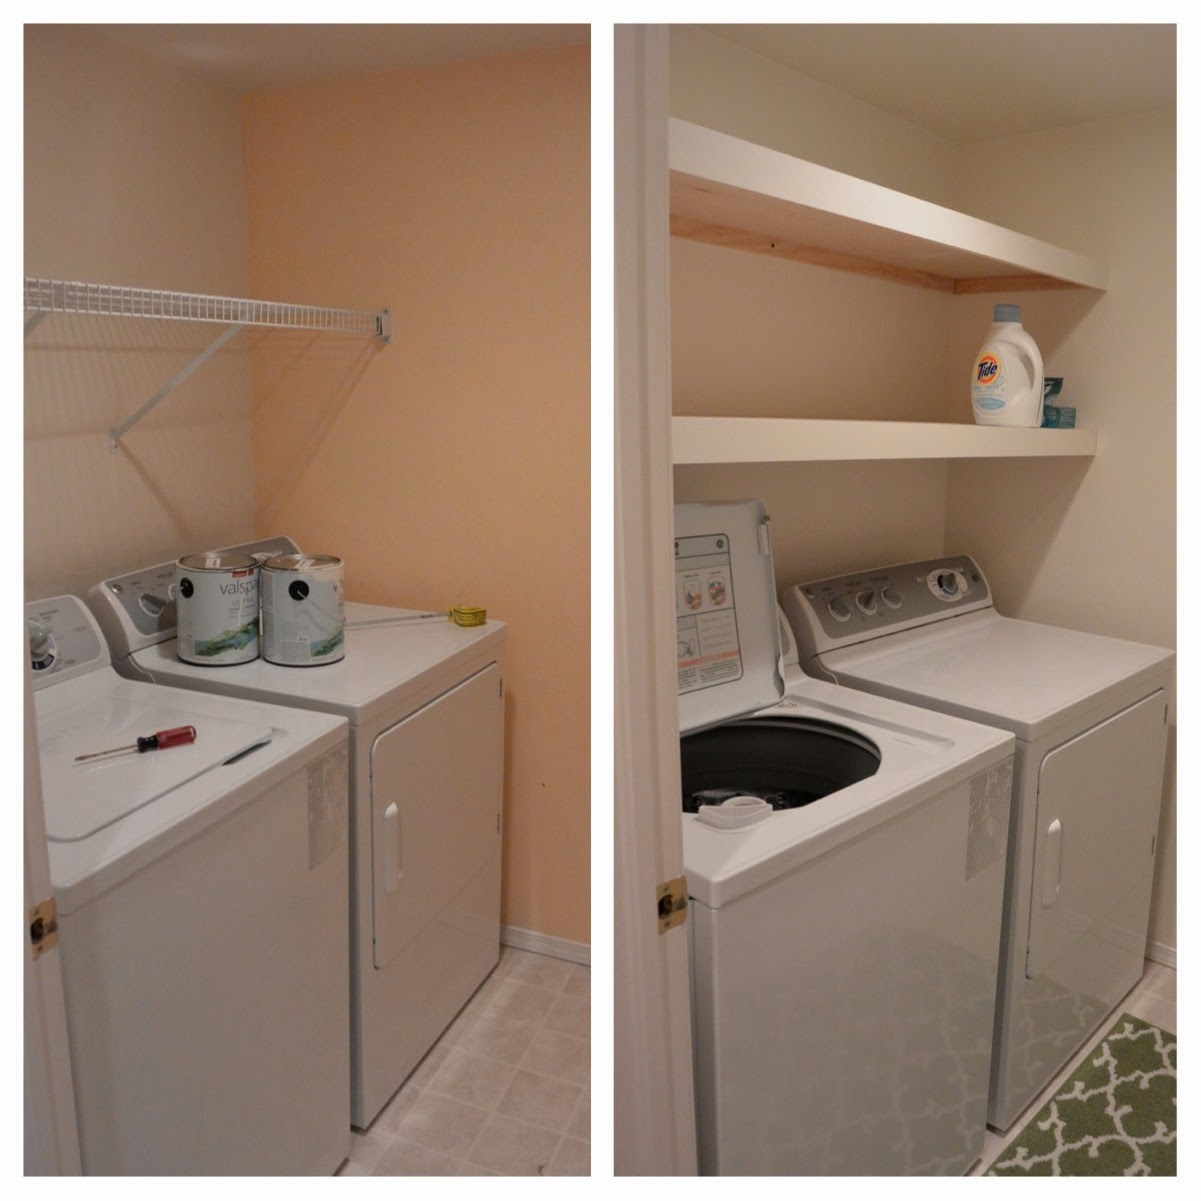 floating shelves laundry room thechurchoffashion beforeafter mom diy kitchen self ikea corner desk cabinet display dishes open oak fire shelf bookcase design cherry wall unit coat